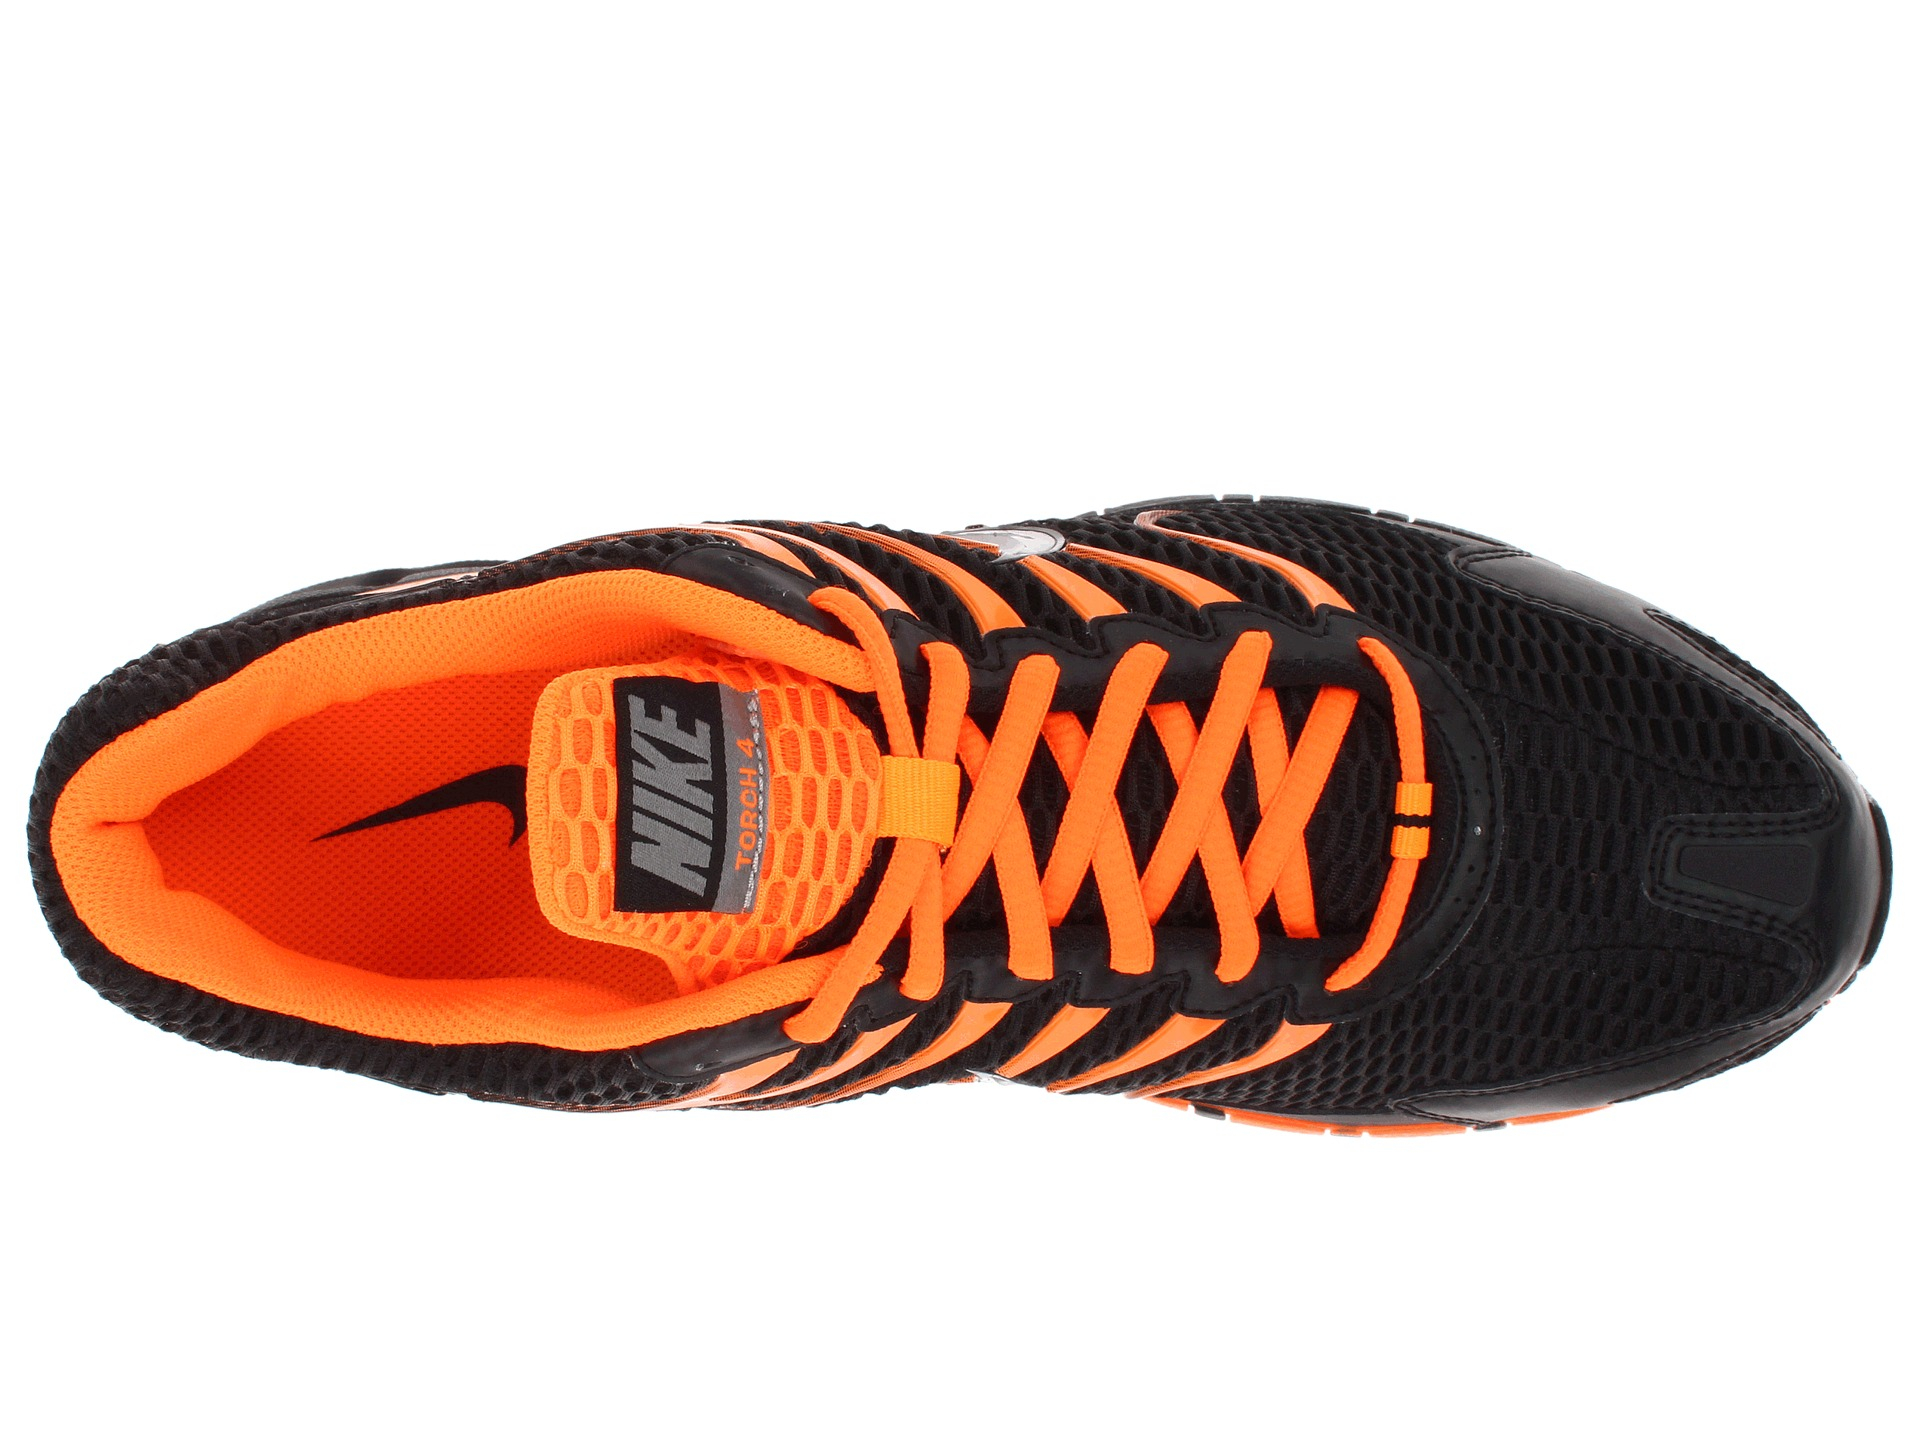 Nike Air Max Torch 4 In Orange For Men Lyst